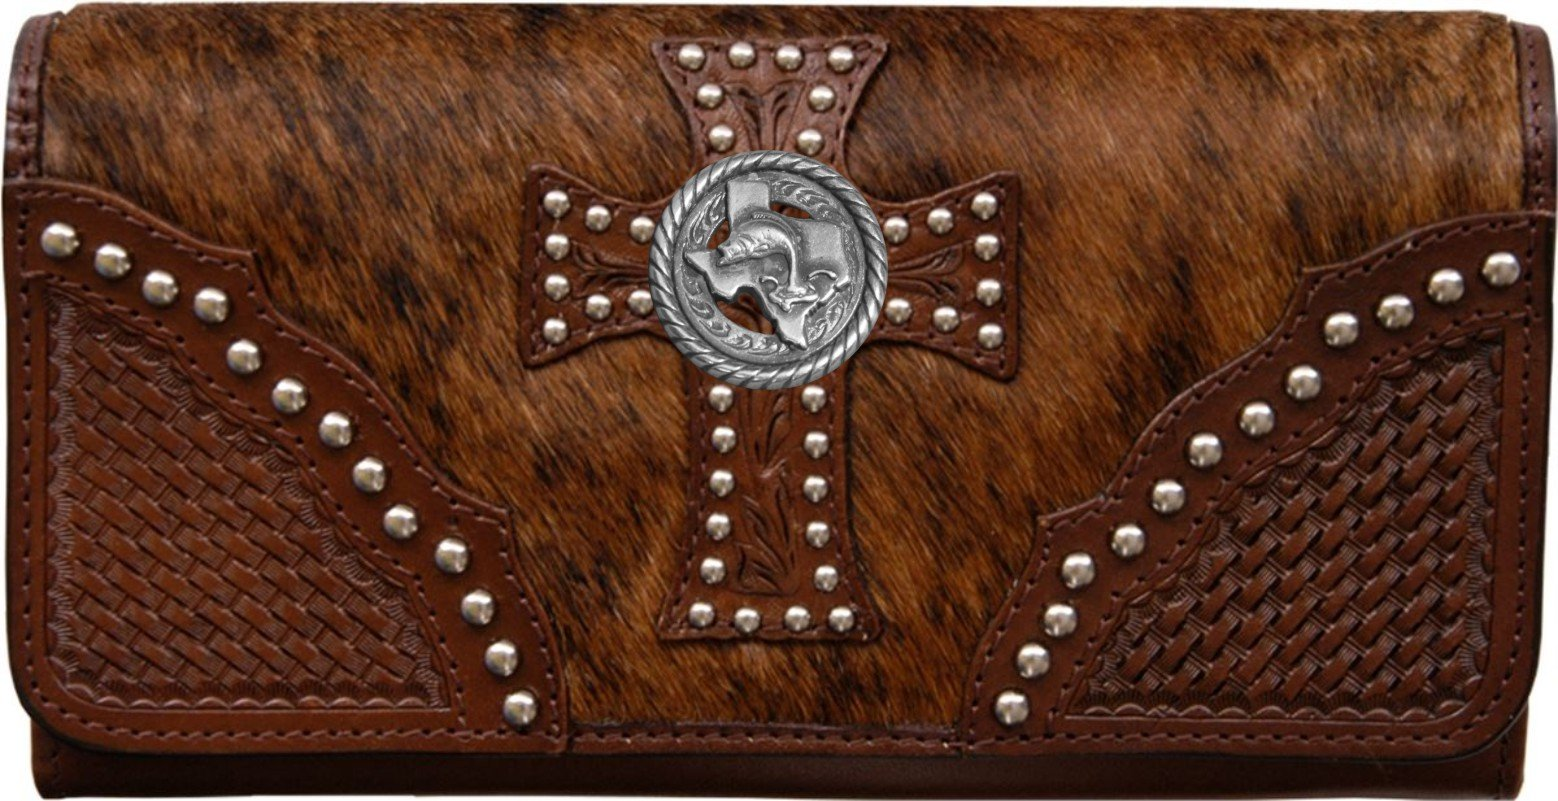 Custom Texas Bass Fishin Natural Hair Christian Clutch Wallet with removable checkbook